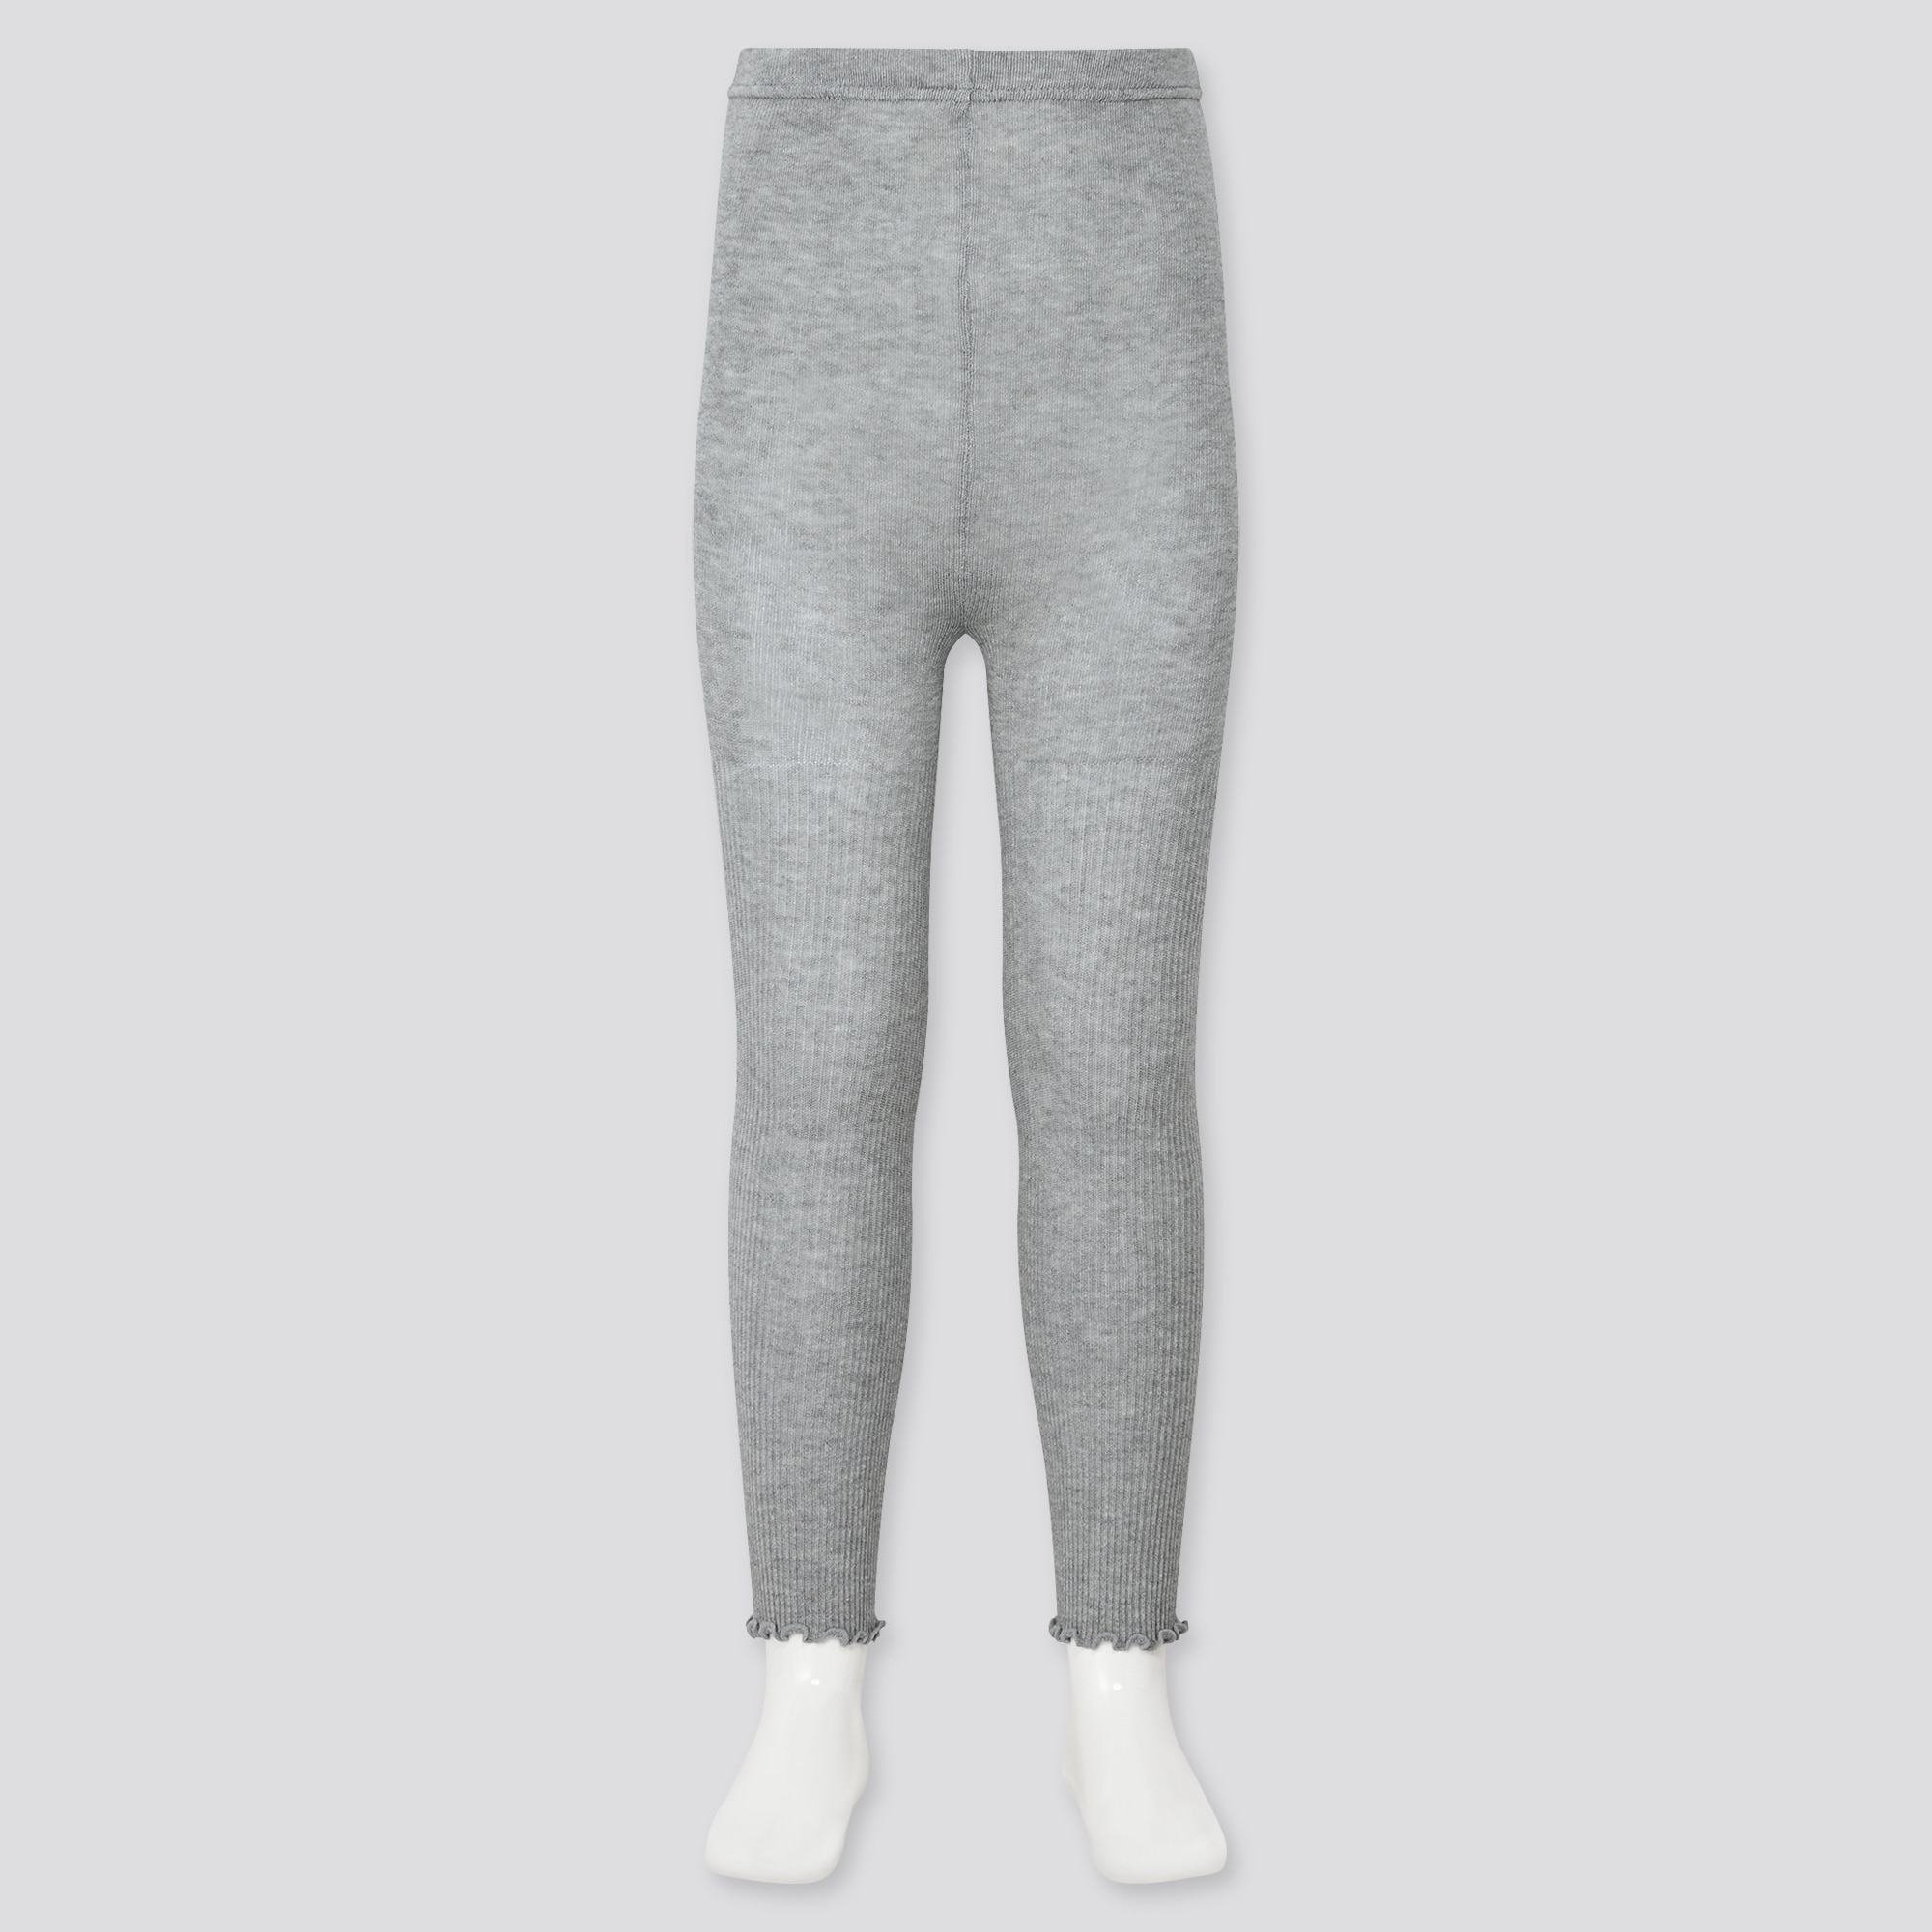 Uniqlo GIRLS RIBBED MELLOW ANKLE LEGGINGS